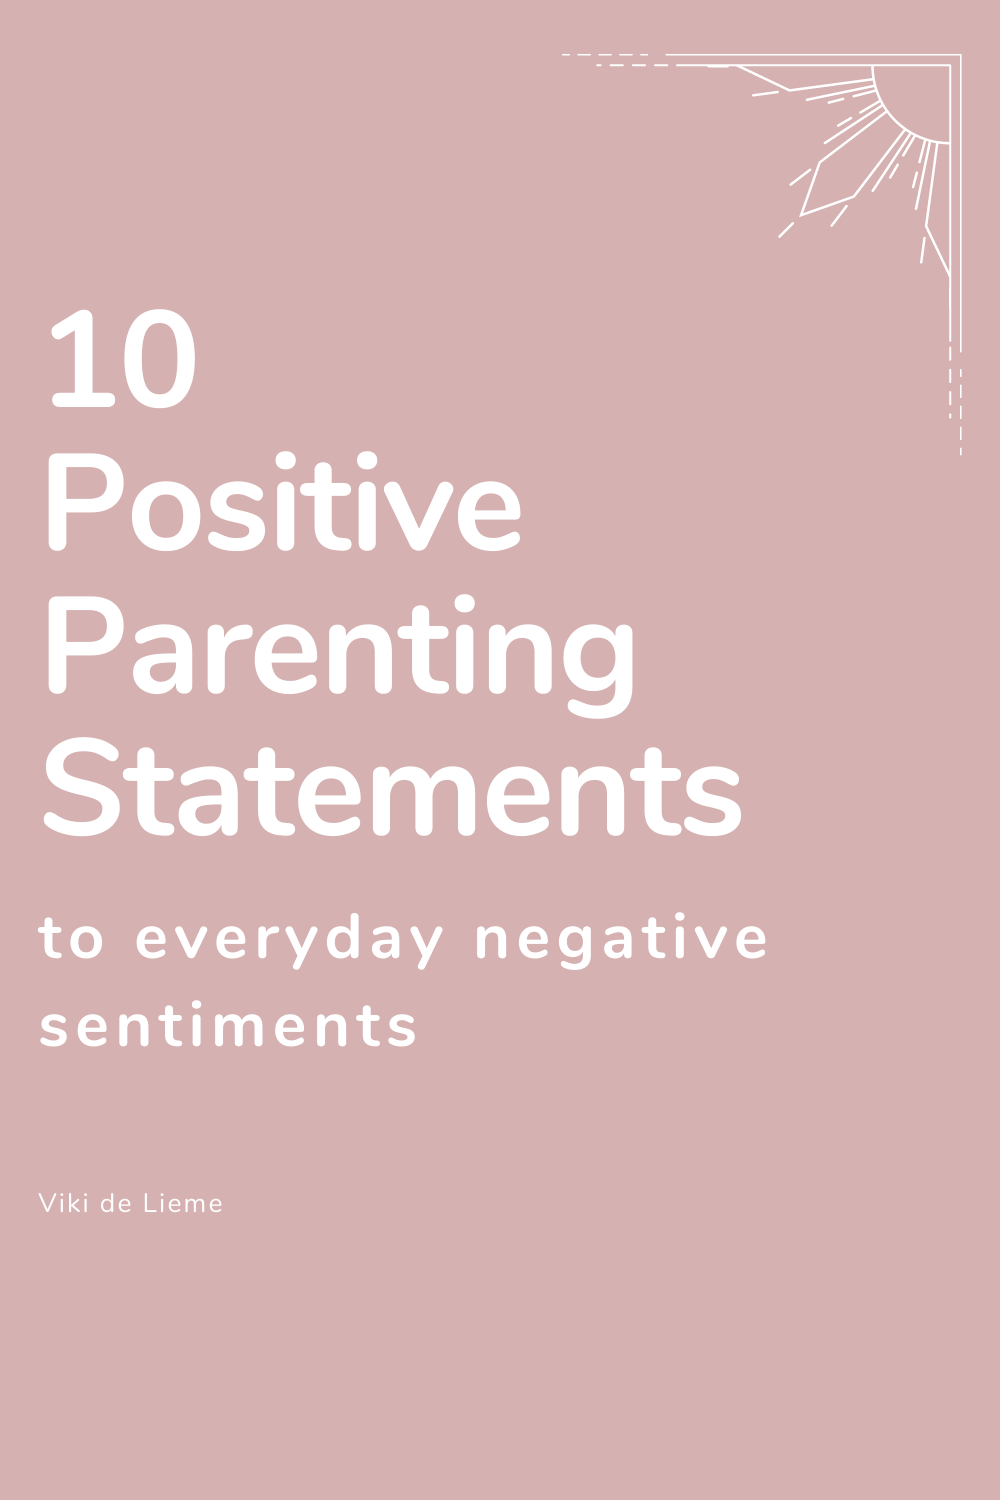 If you have no idea what to say to your children when they show lack of self confidence or dismay - this will help. #positiveparenting #positivecommunicationwithkids #empoweringchildren #children'sbigfeelings #parenting #smartparenting #gentleparenting